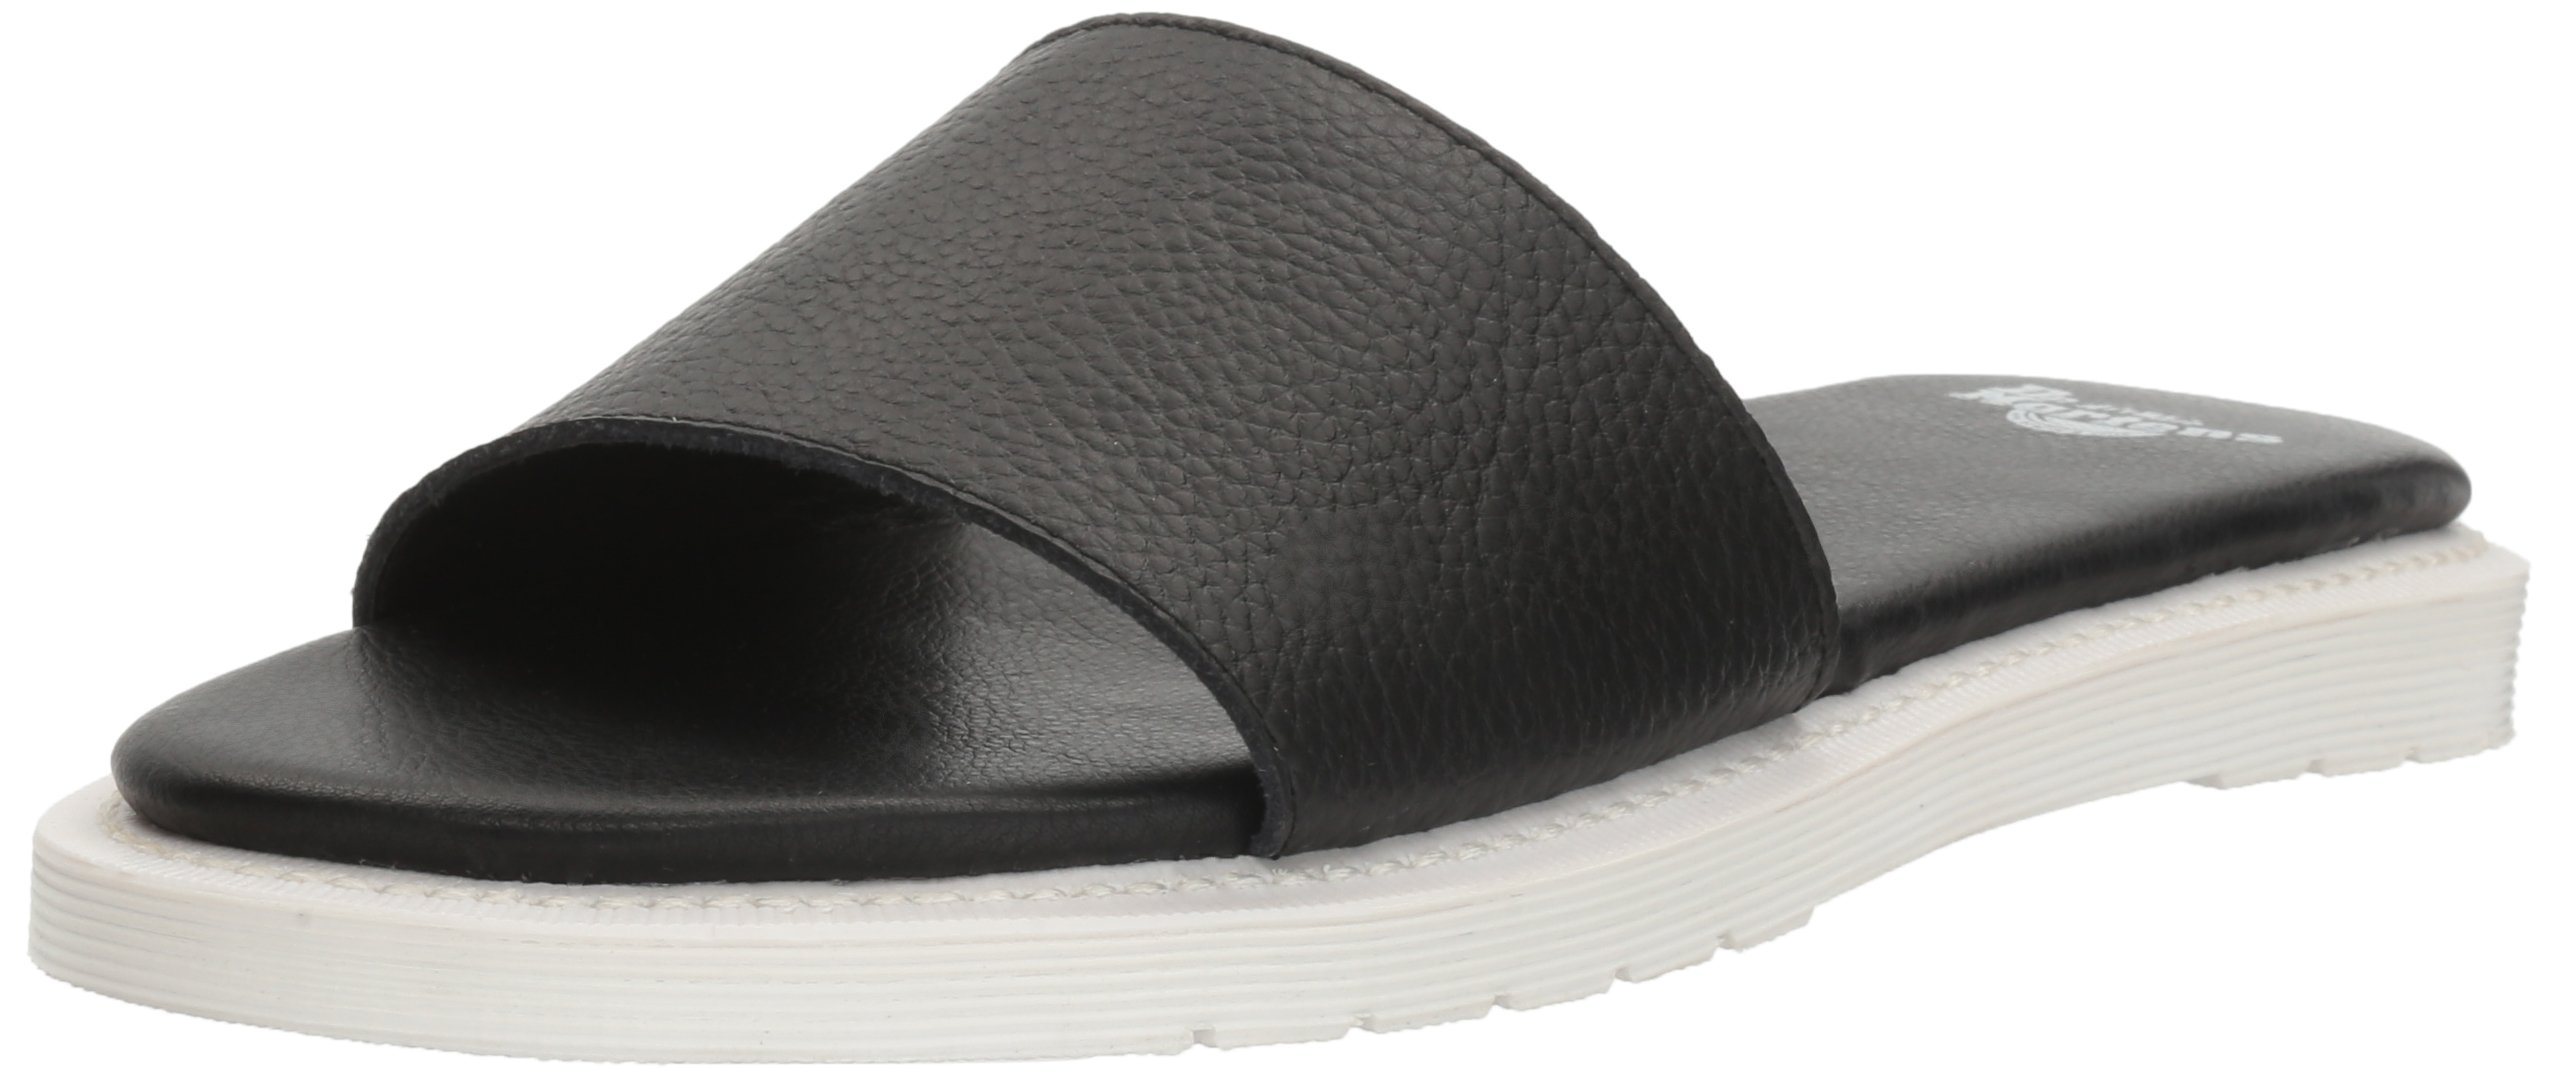 Women's Cierra II Black Slide Sandal